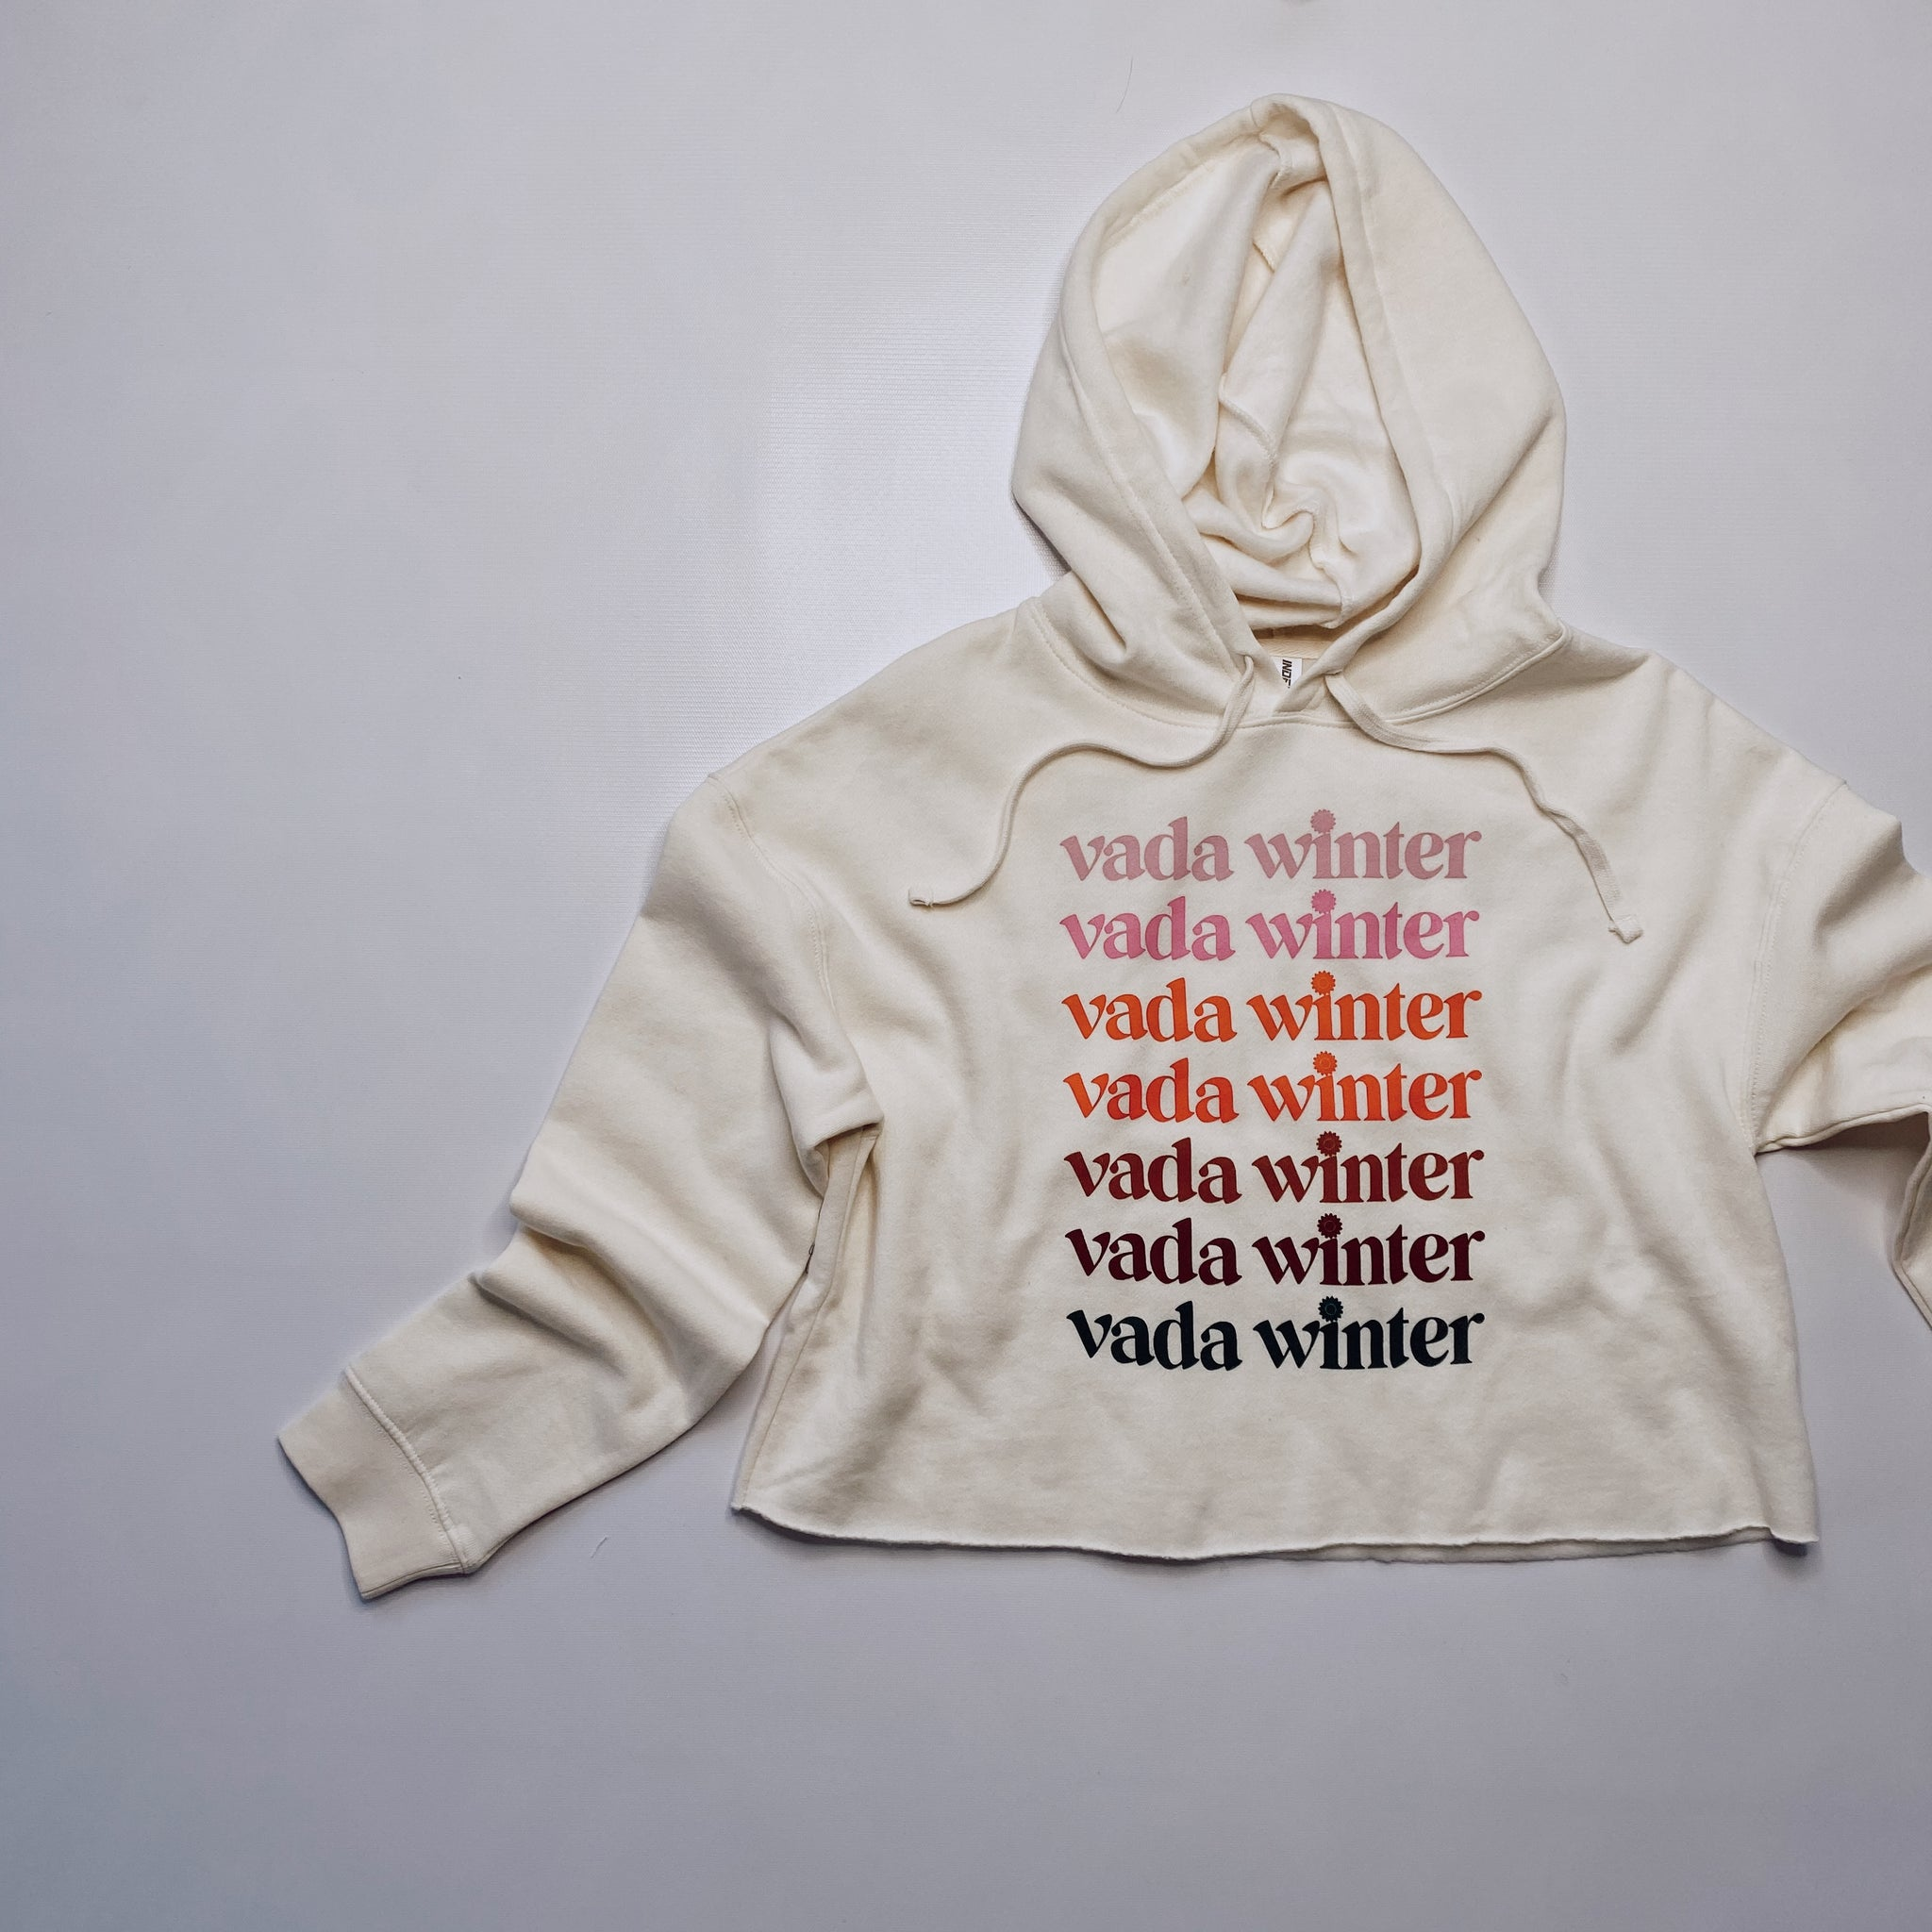 Vada Winter Cropped Hooded Sweatshirt